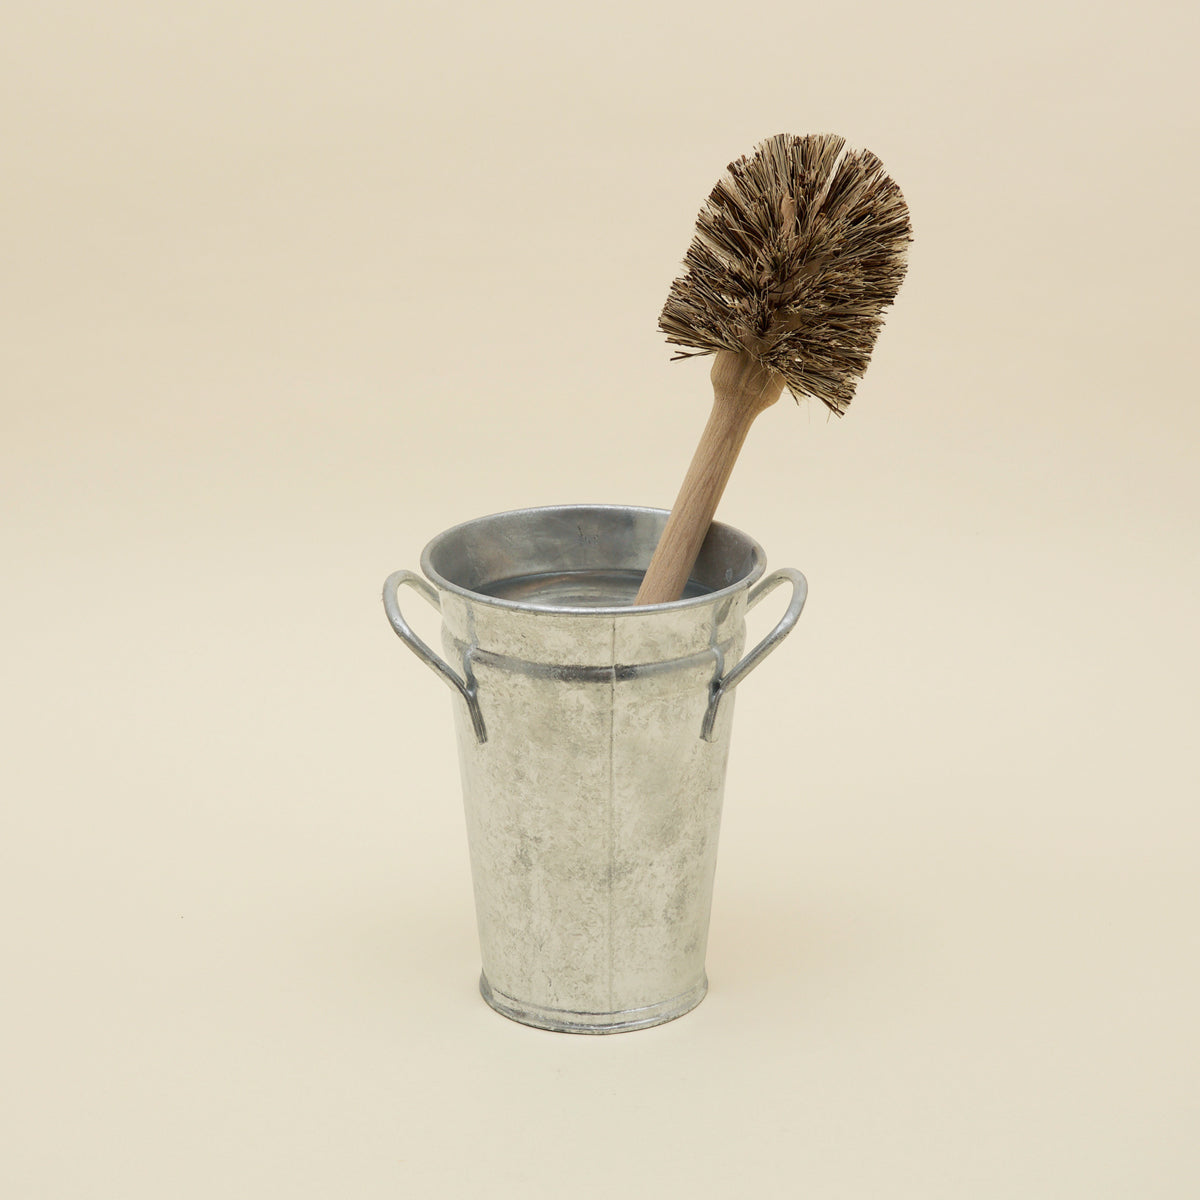 Toilet Brush with Bucket